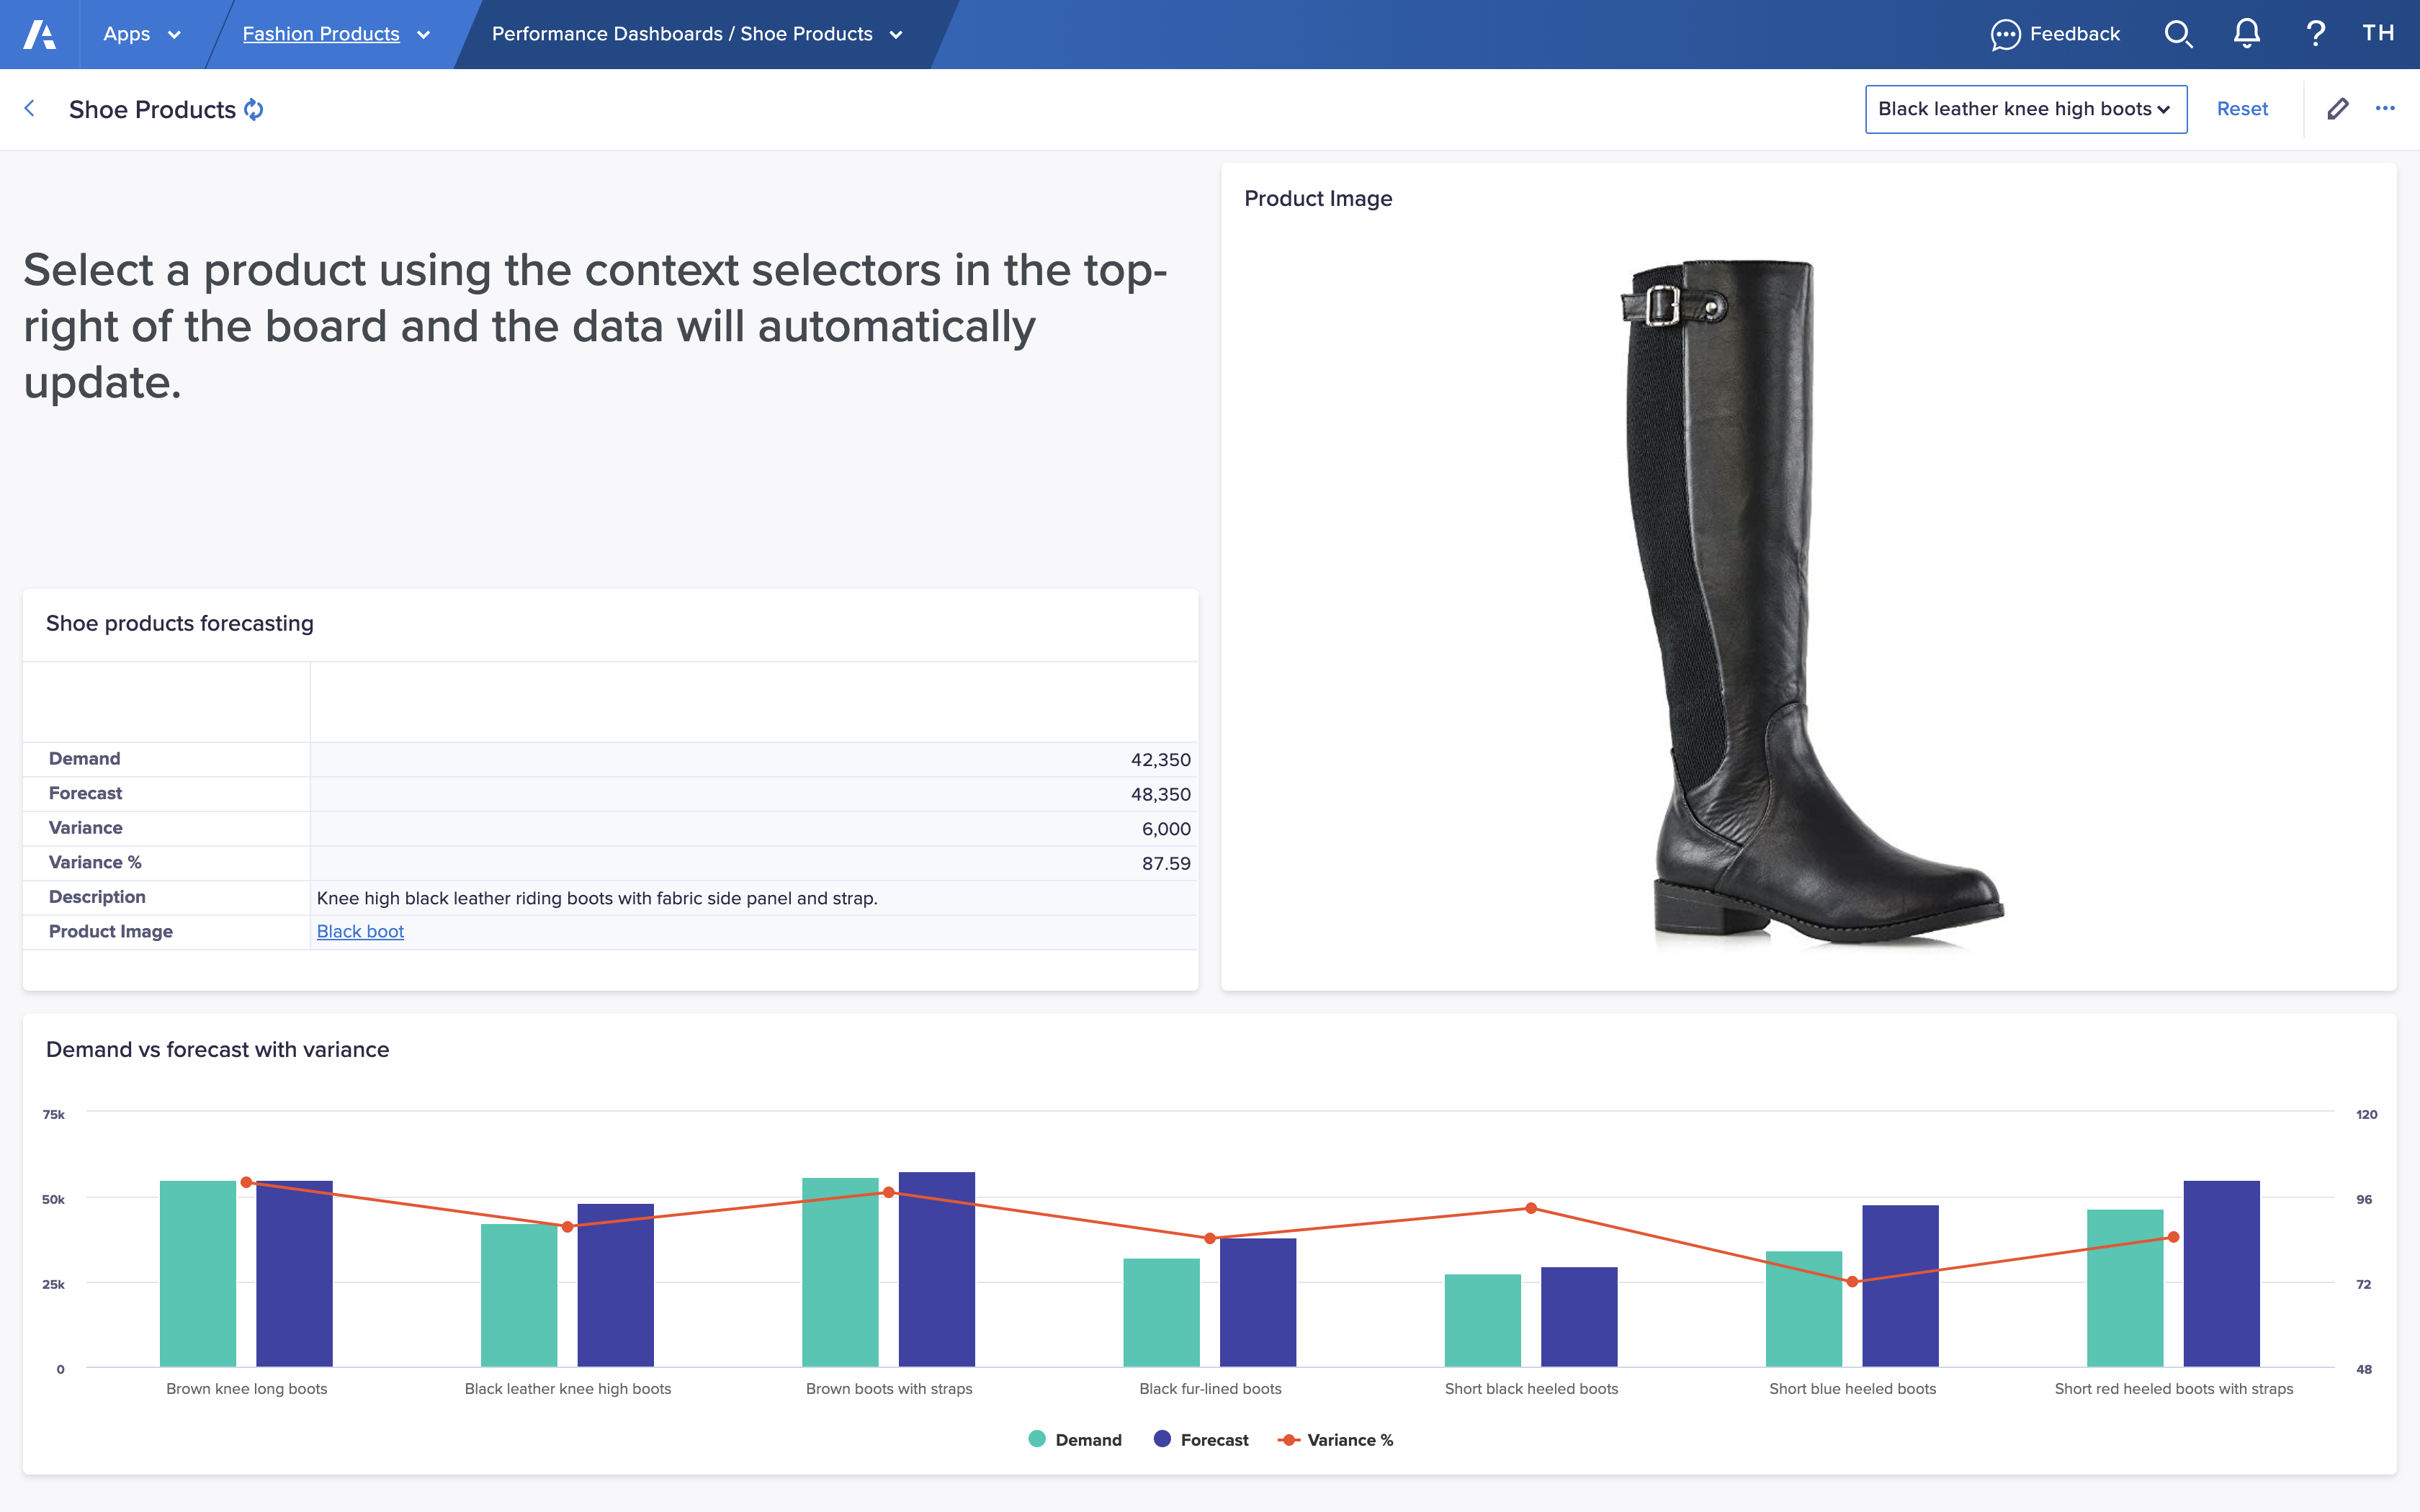 An image card on a board named Show Products shows an image of a black leather knee high boot. It displays because the product has been chosen using the context selectors in the top-right of the board.